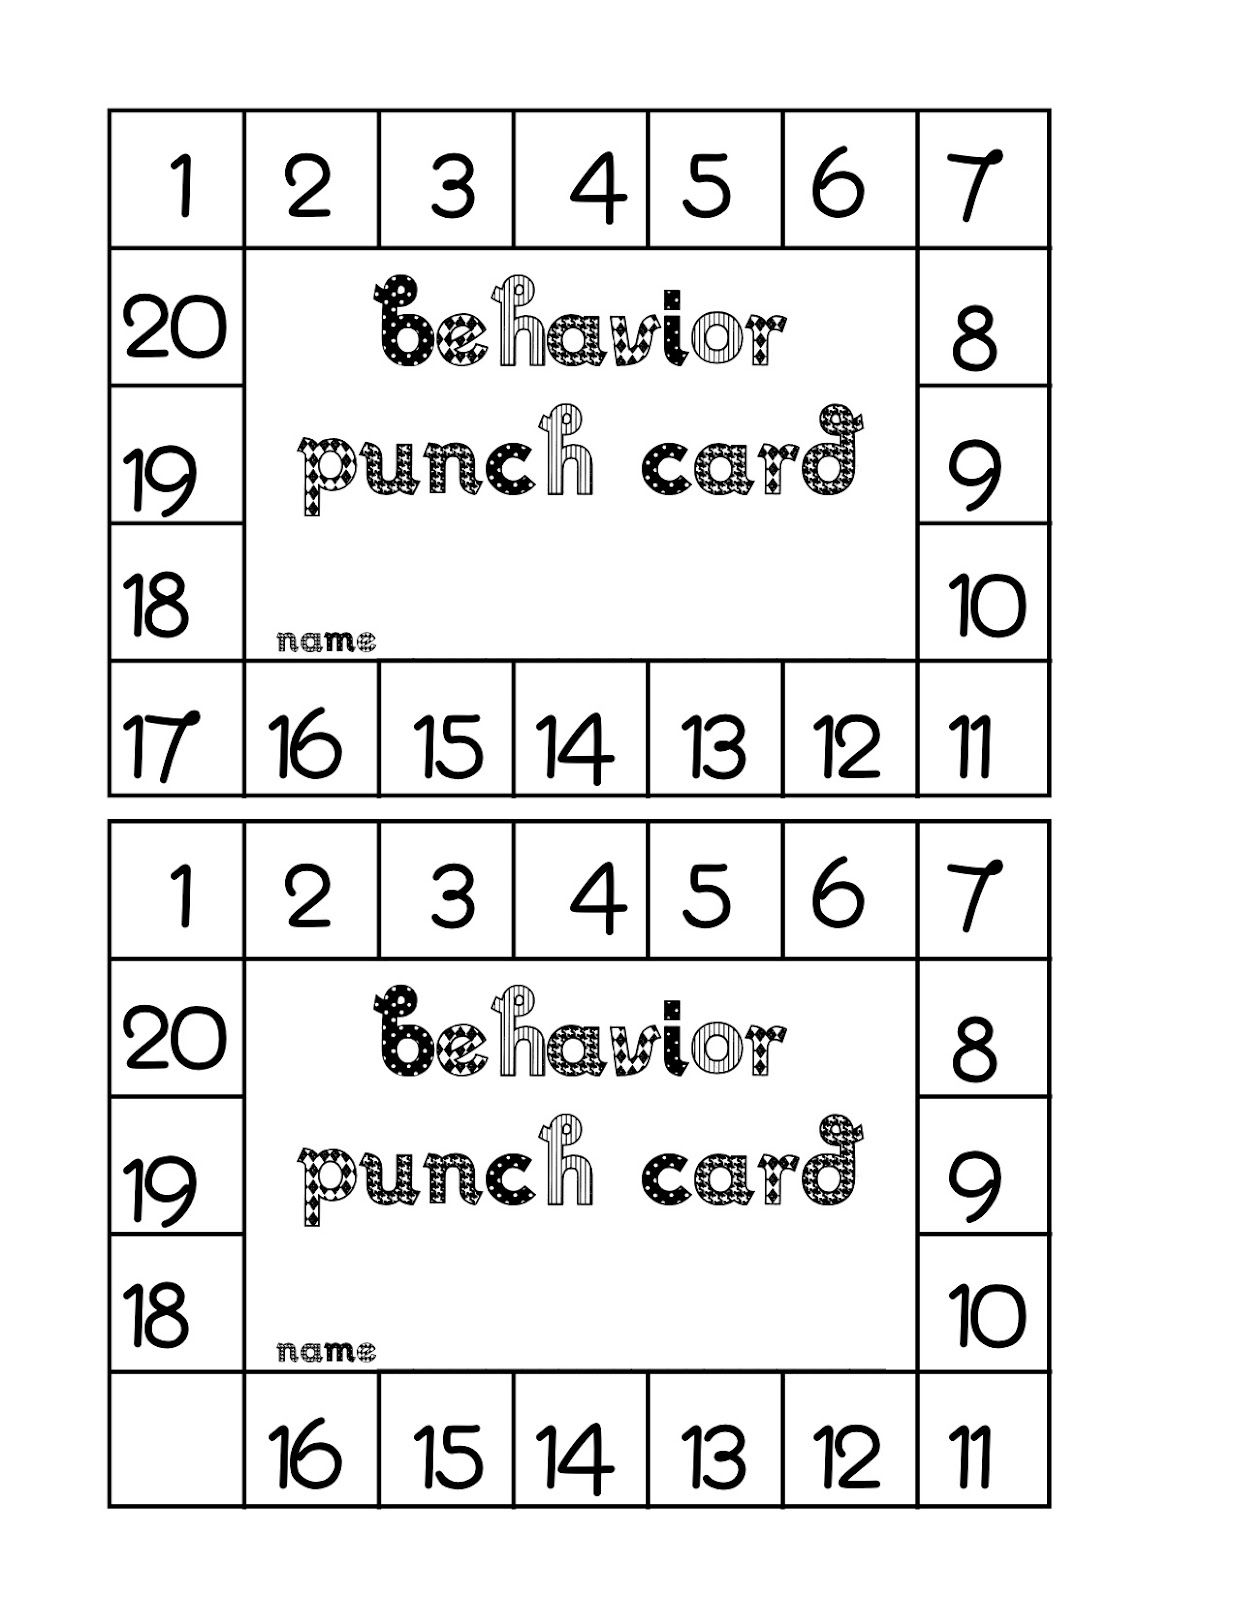 Free Punch Card Template Room A Special Ed Classroom Blog - Free punch card template